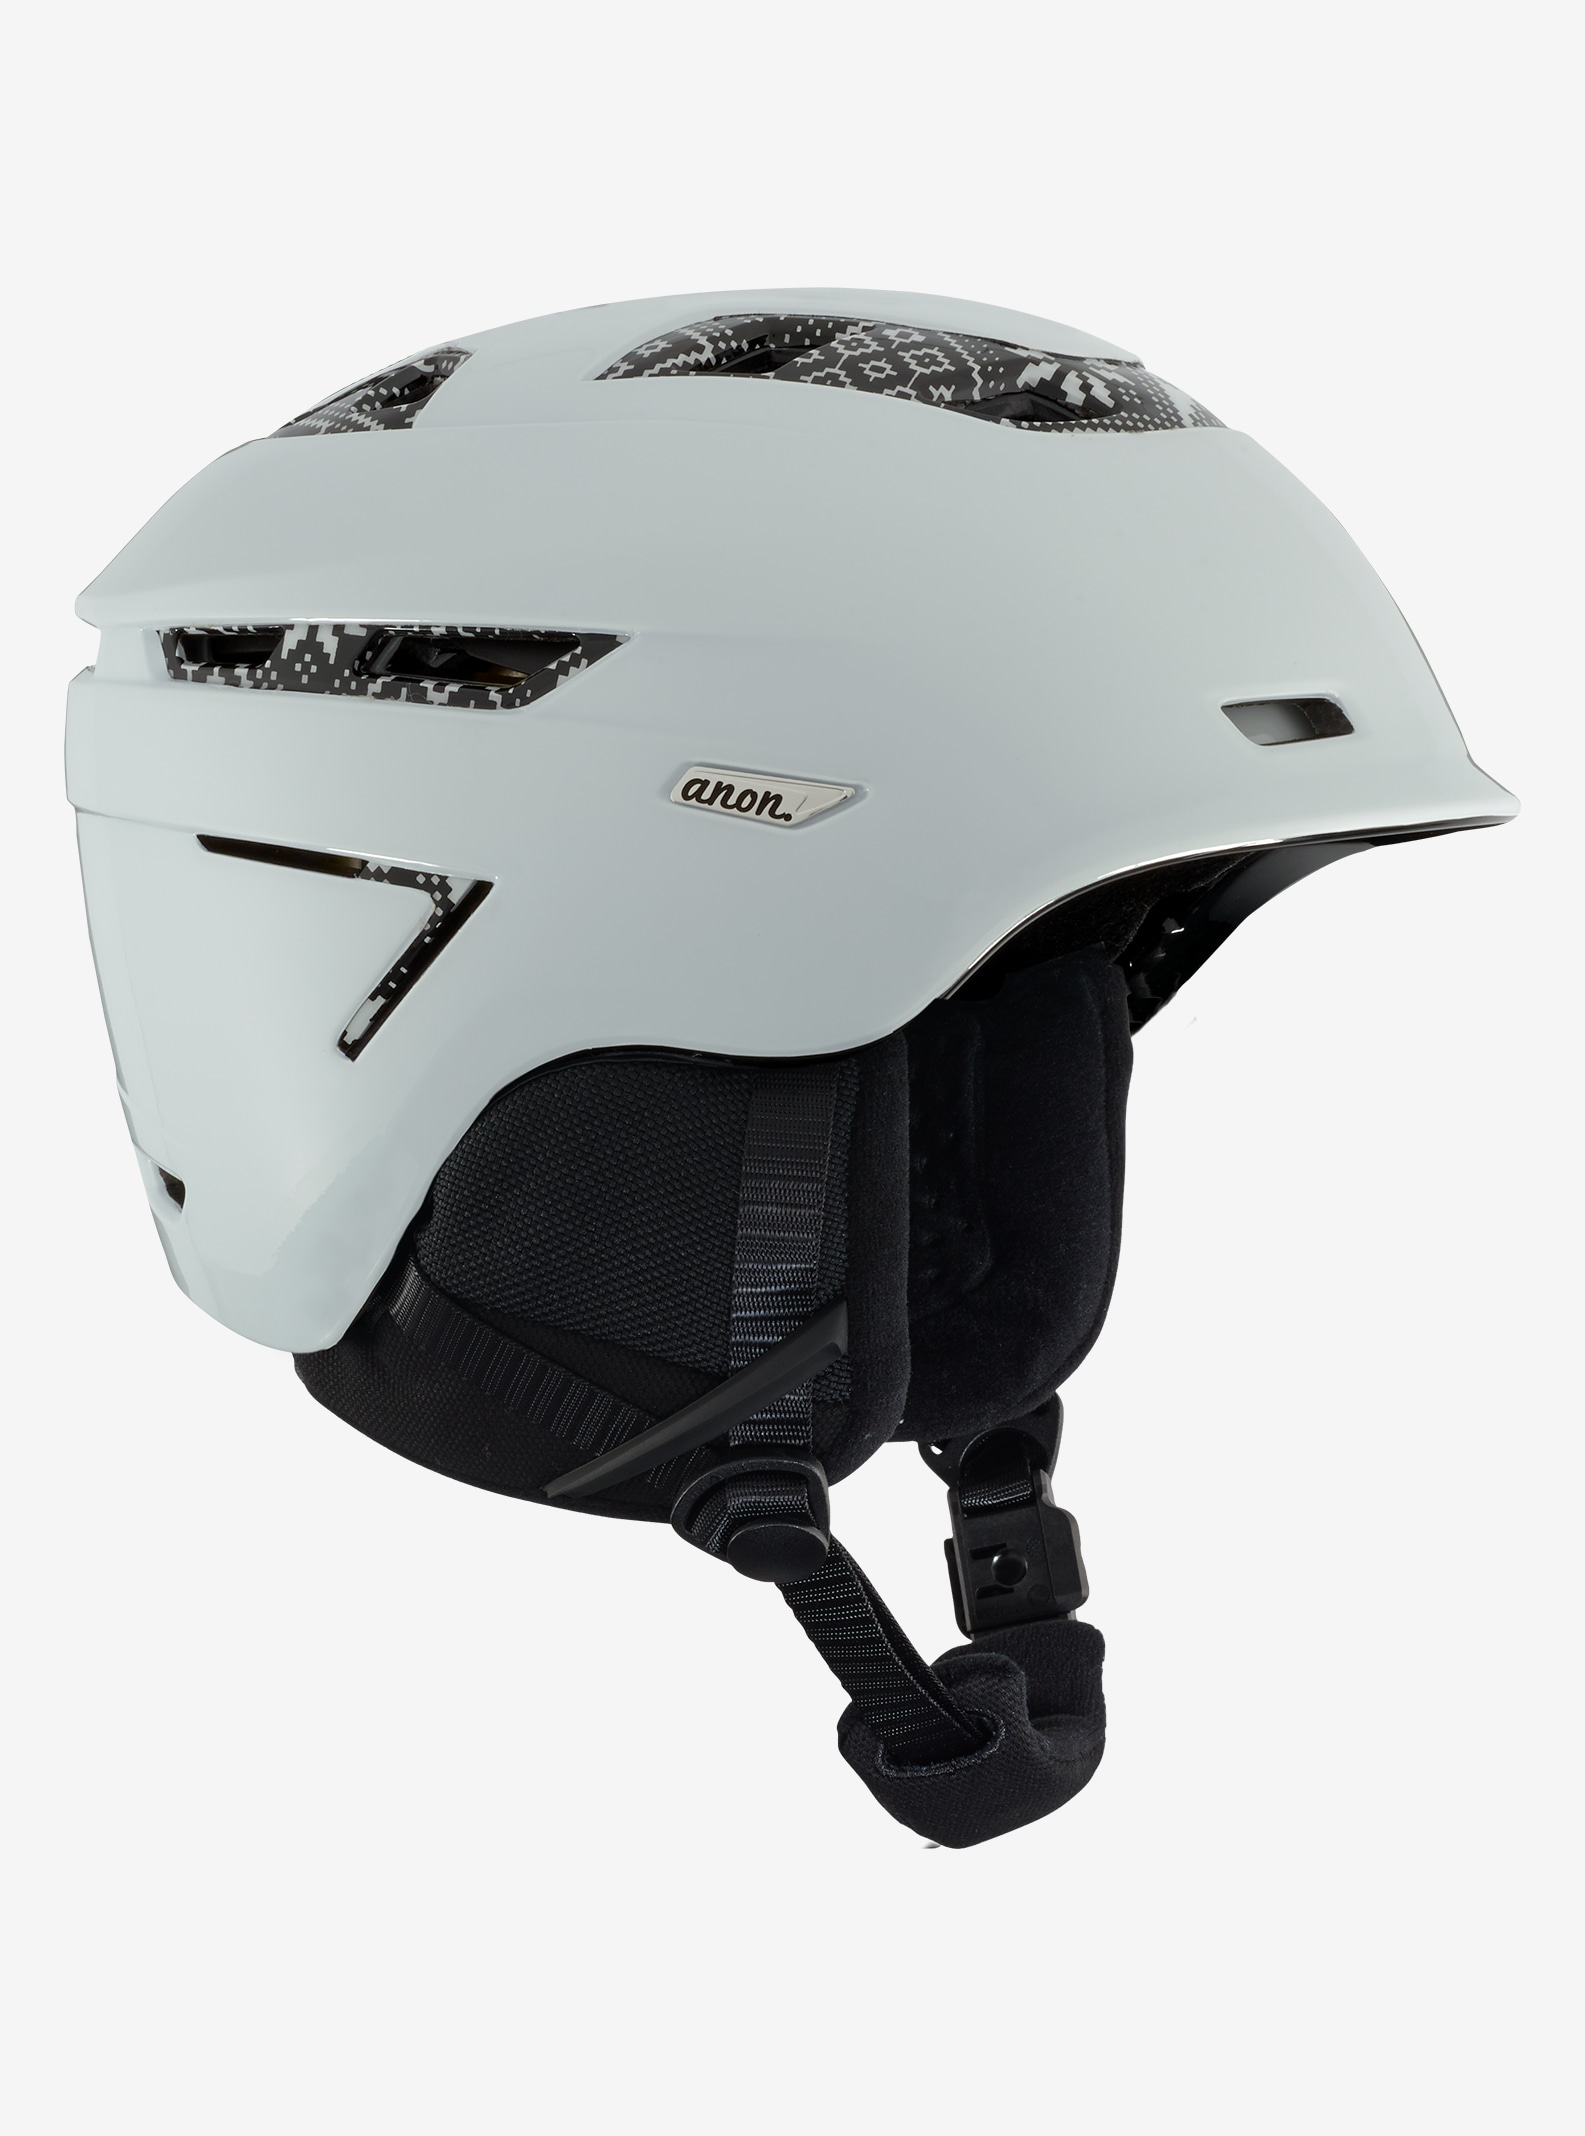 Women's Anon Omega Helmet shown in Apres White - MIPS